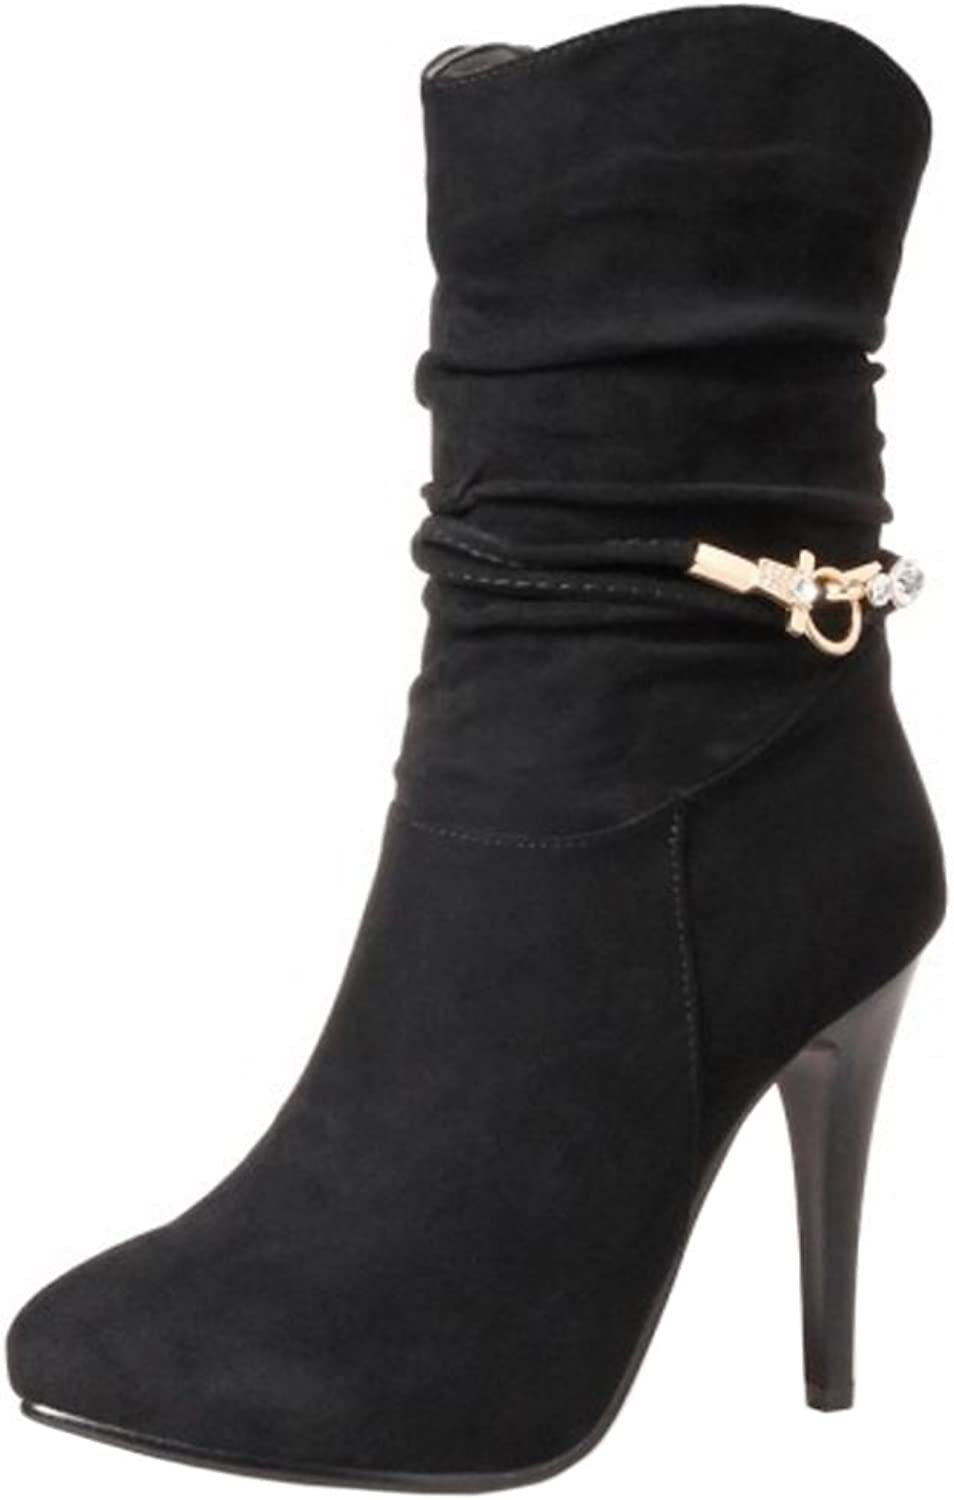 KemeKiss Women Fashion Stiletto High Top Boots shoes with Zipper